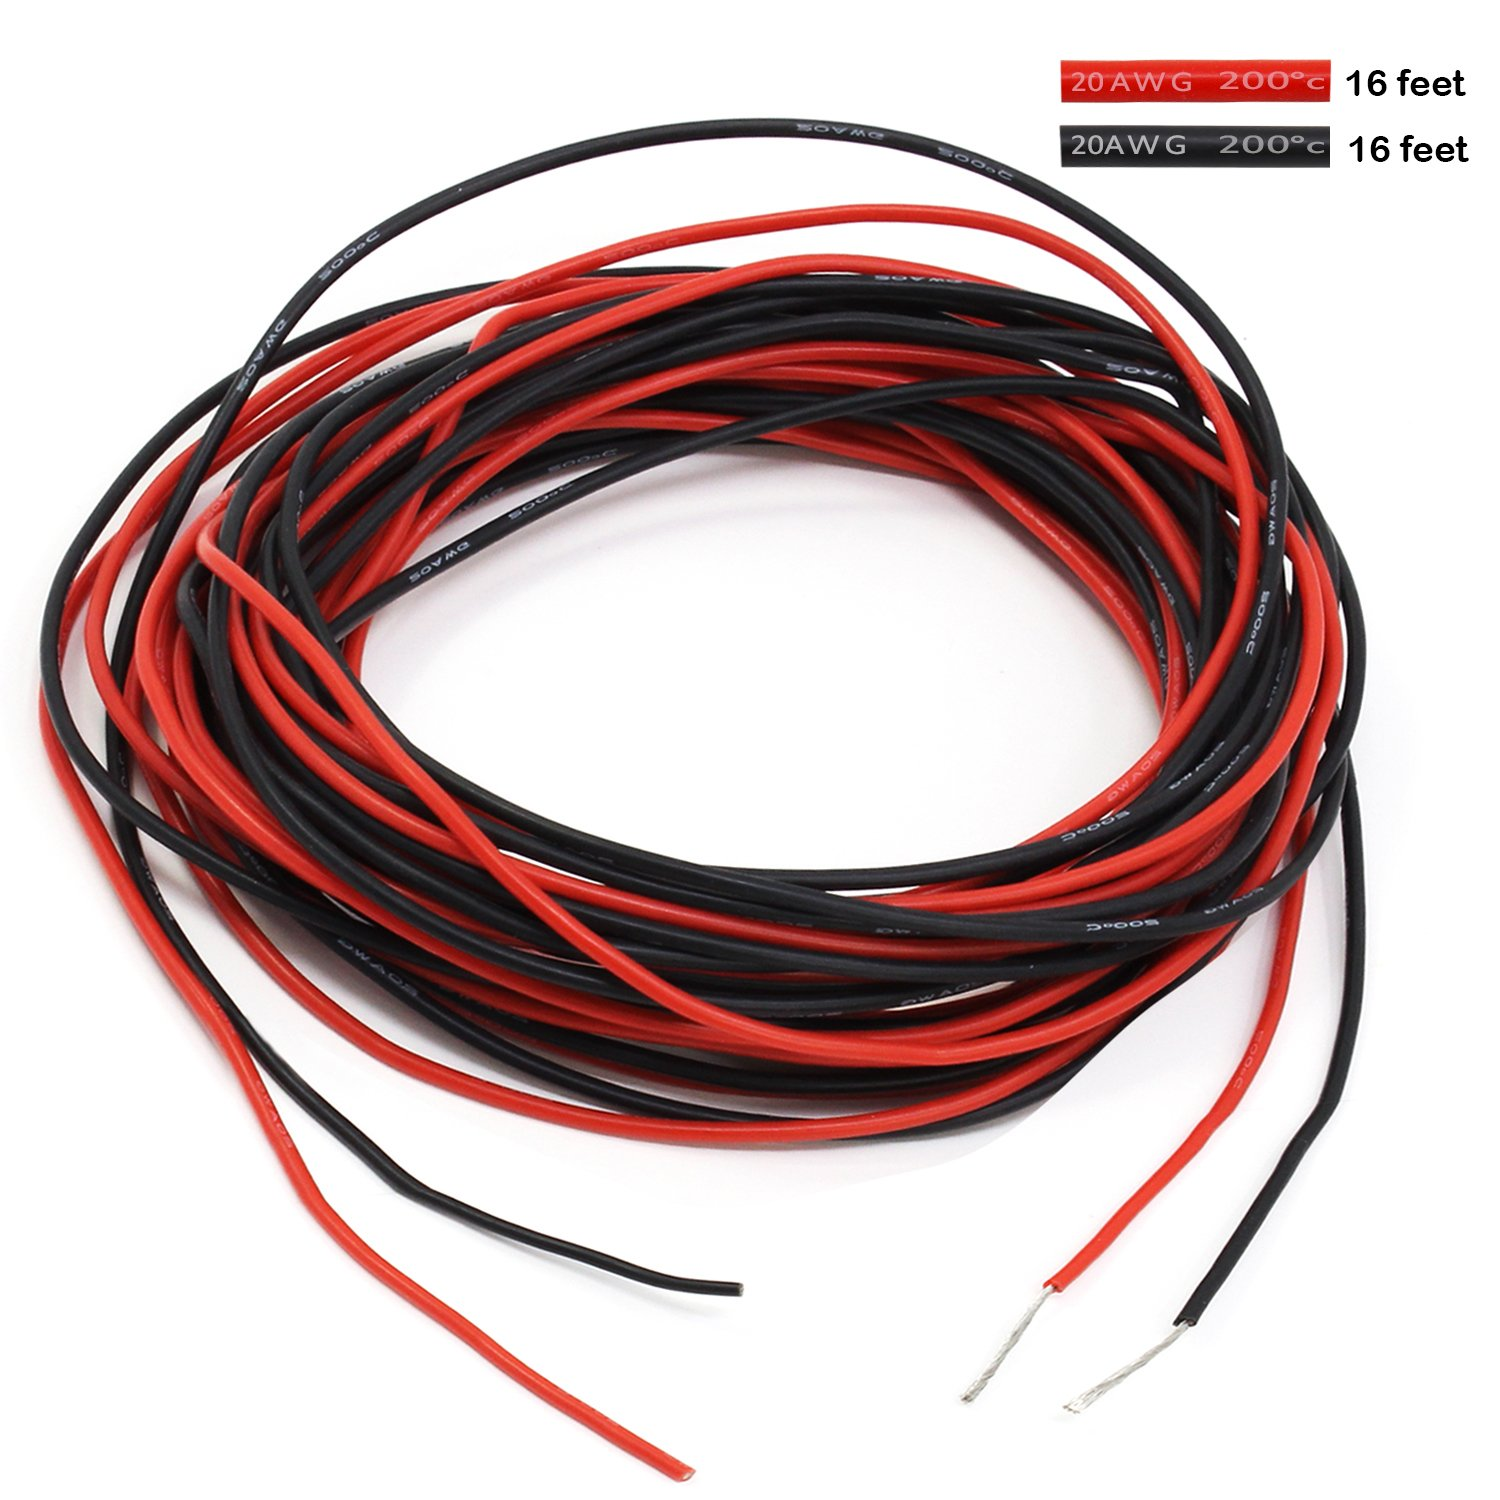 PsmGoods 10 Füße 10 Gauge AWG Flexible: Amazon.de: Elektronik